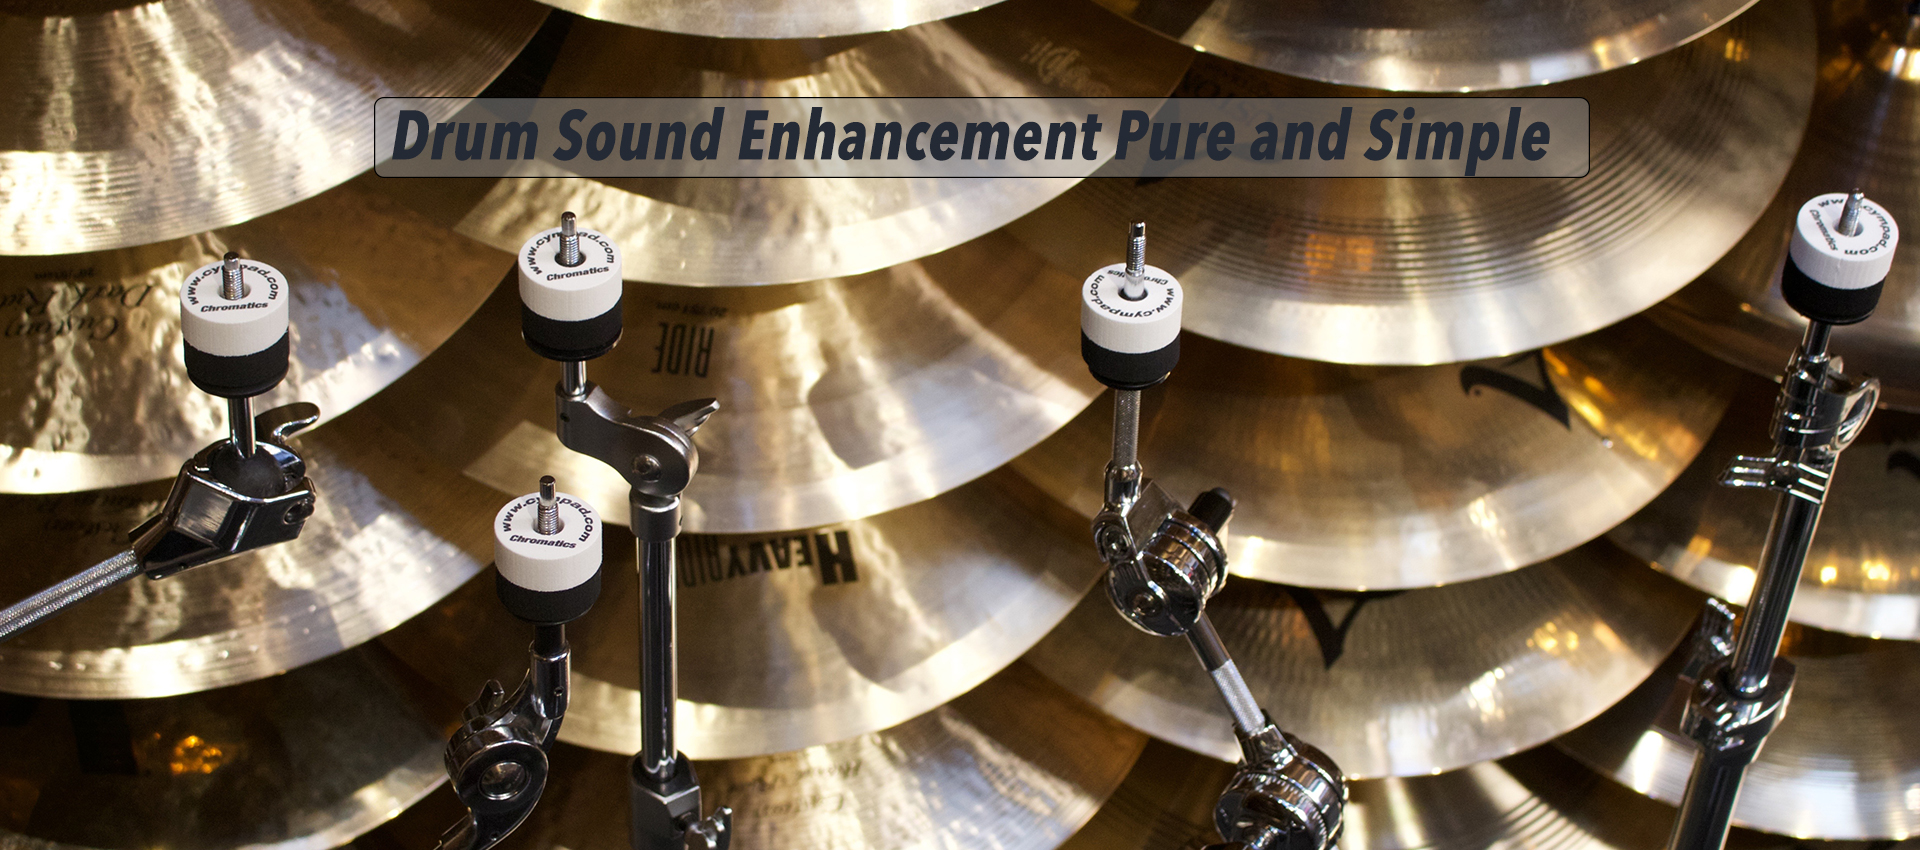 Drum_Sound_Enhancement_Pure_And_Simple